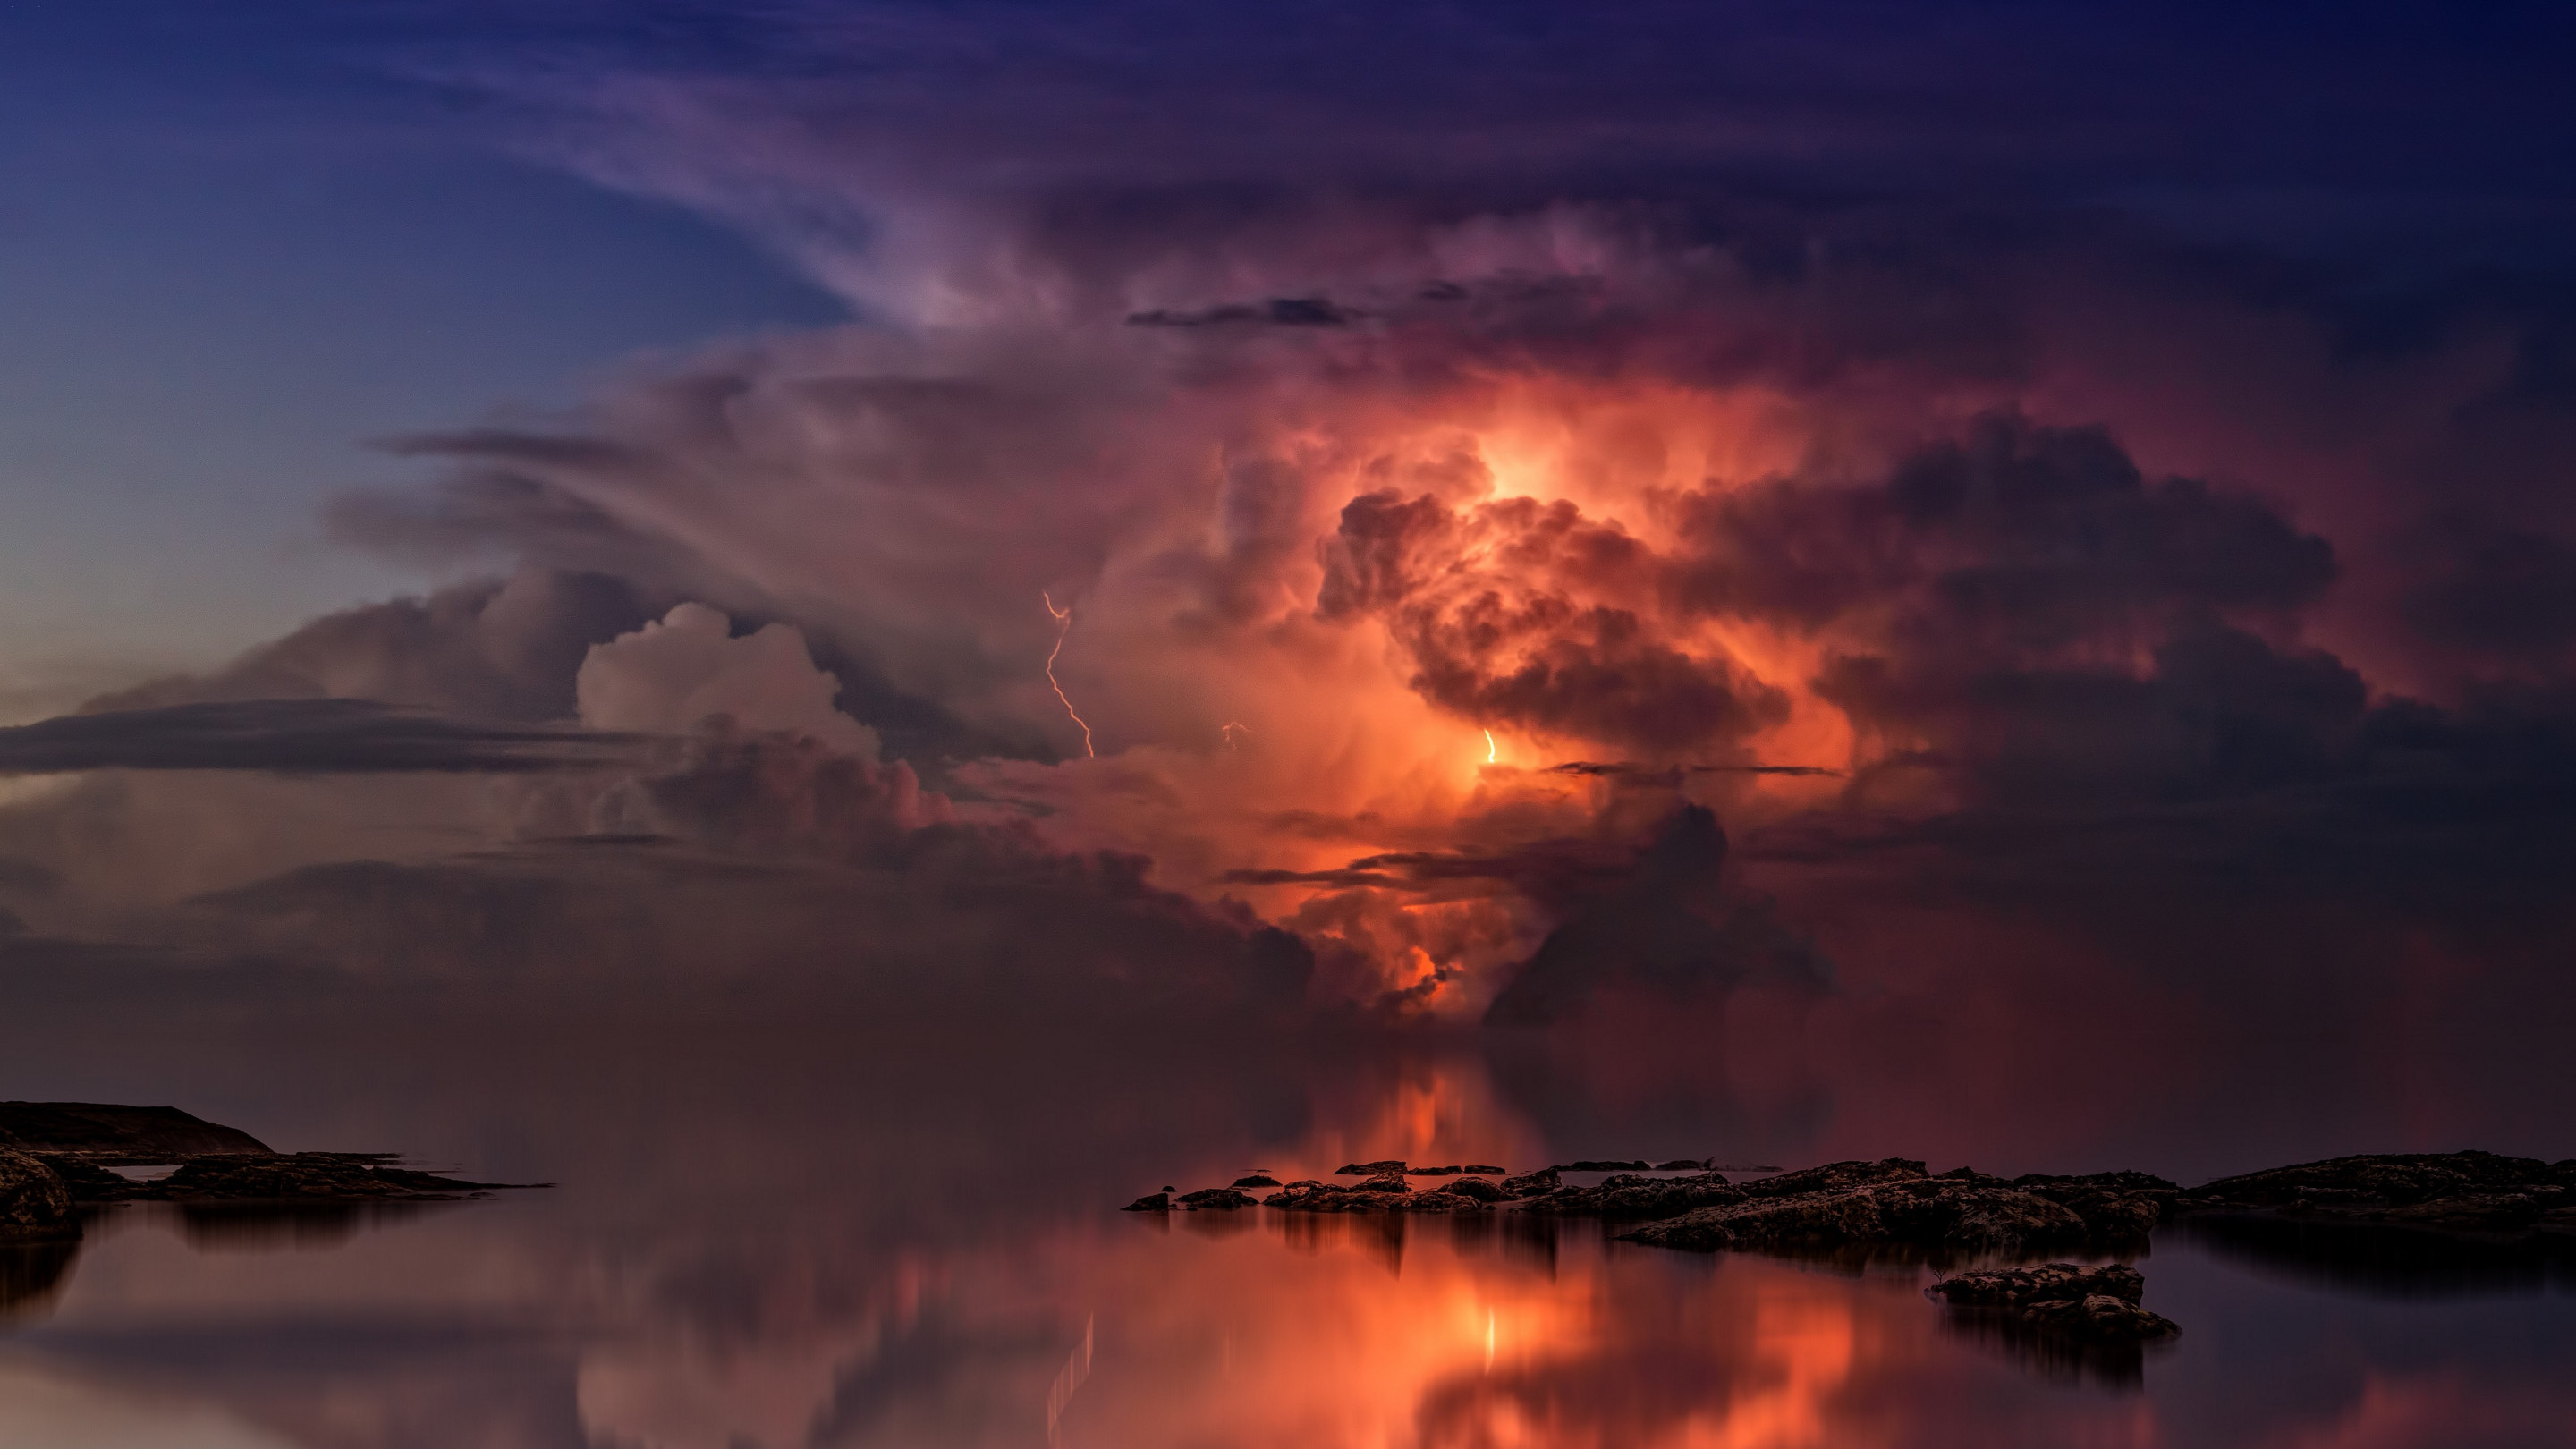 Lightning and thunderstorm in the sky wallpaper 2880x1620